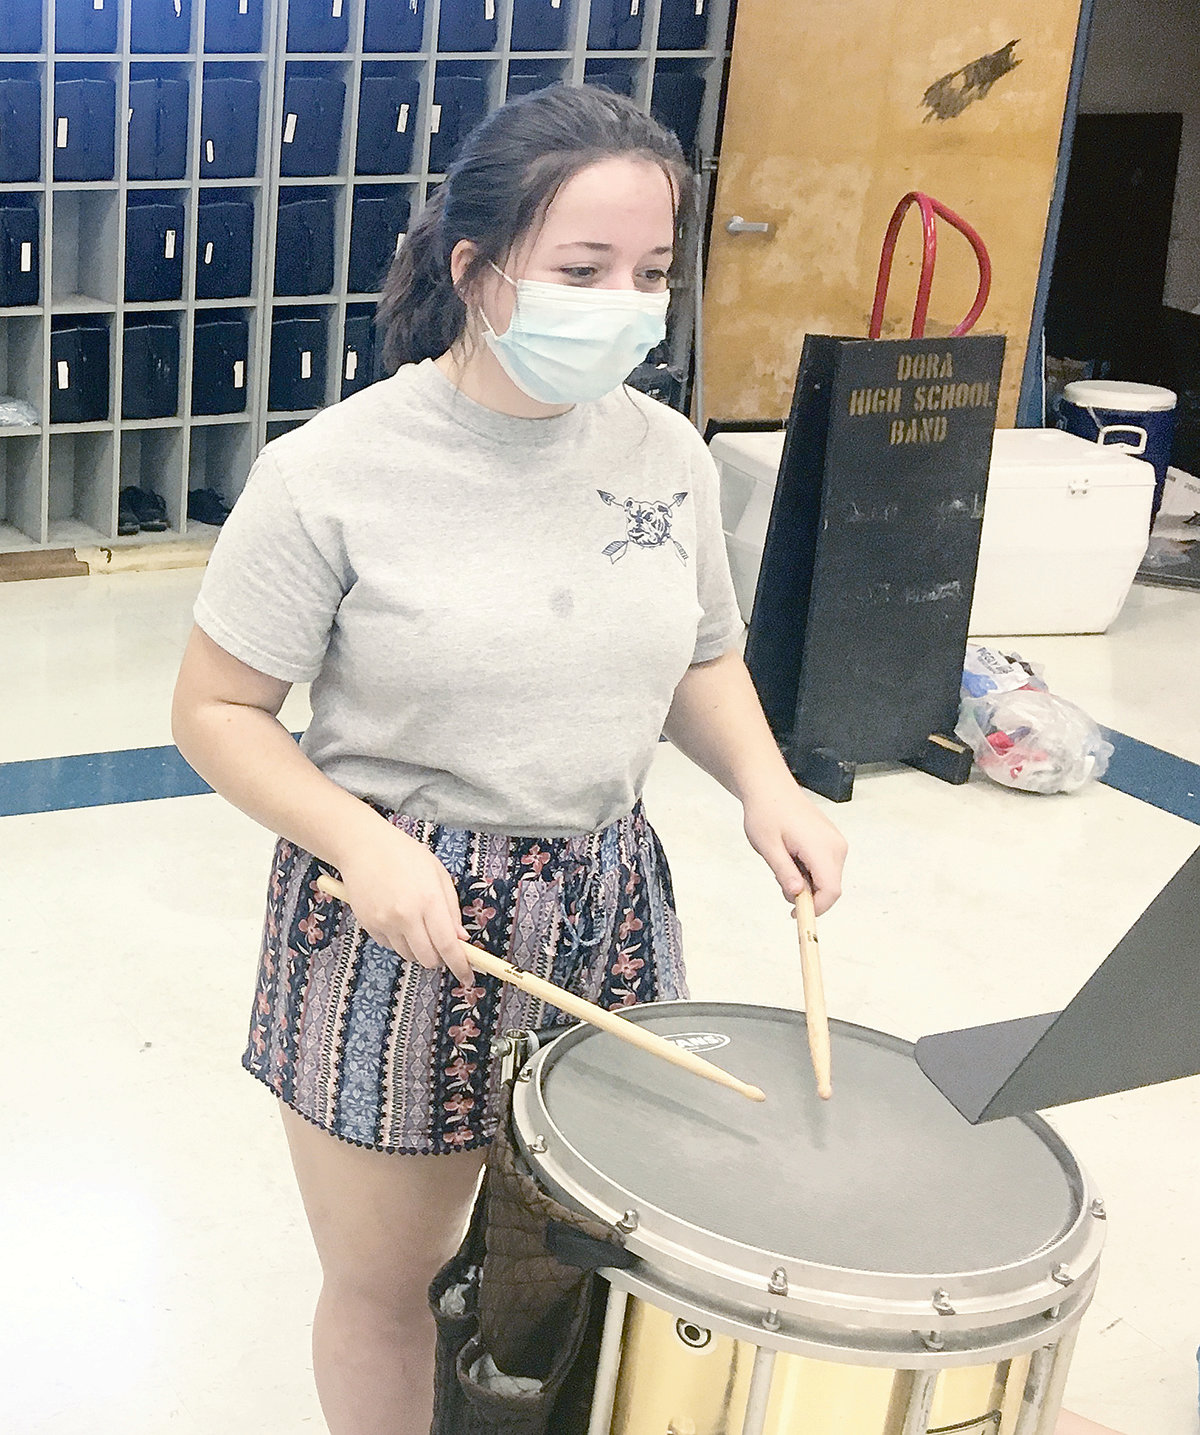 A Dora High School student wears a face mask to help prevent the spread of COVID-19 during band camp.